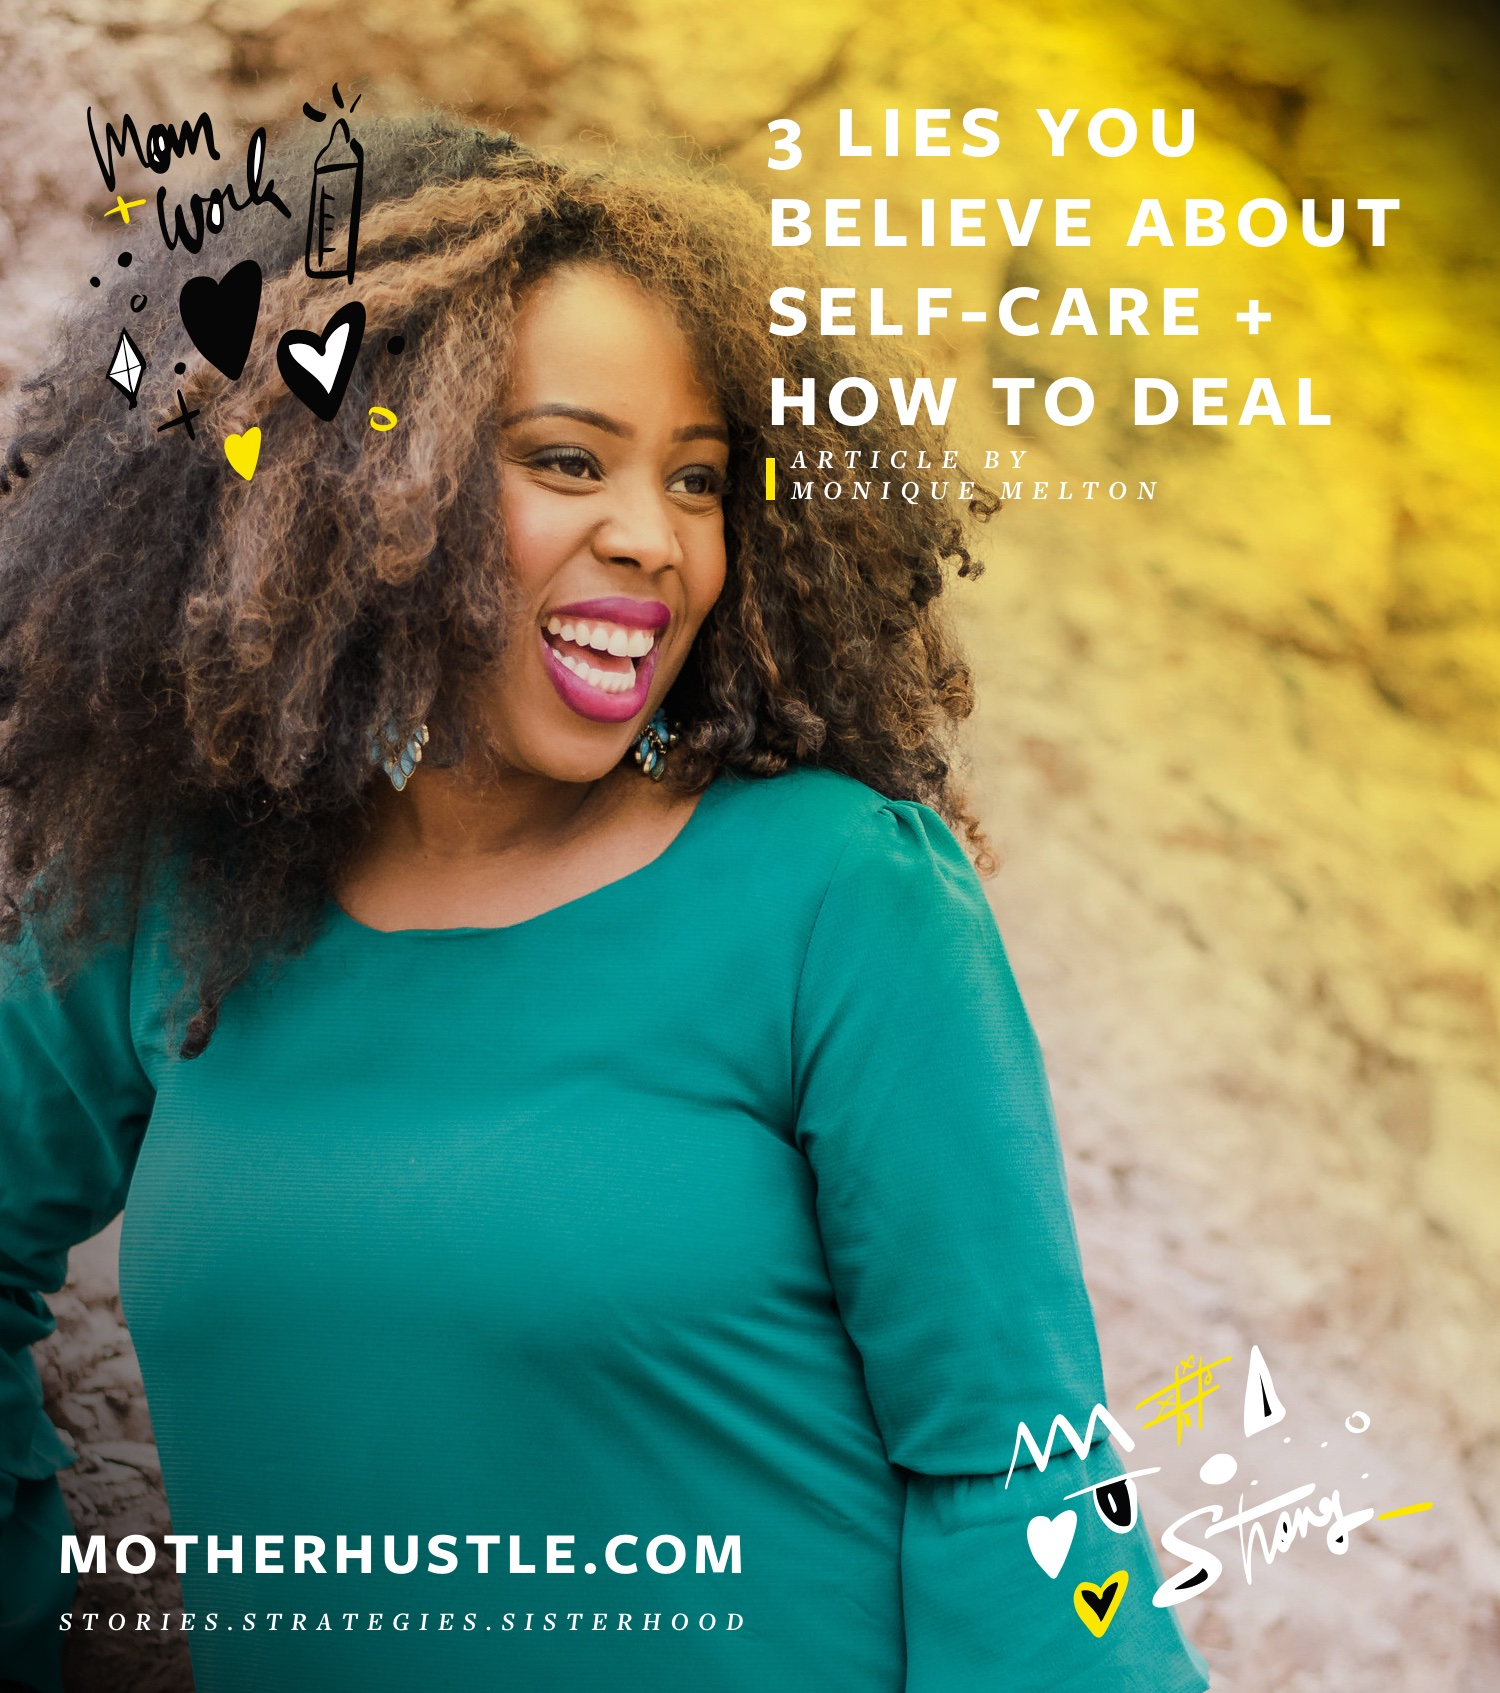 3 Lies You Believe About Self-Care + How to Deal - by Monique Melton for MotherHustle -1